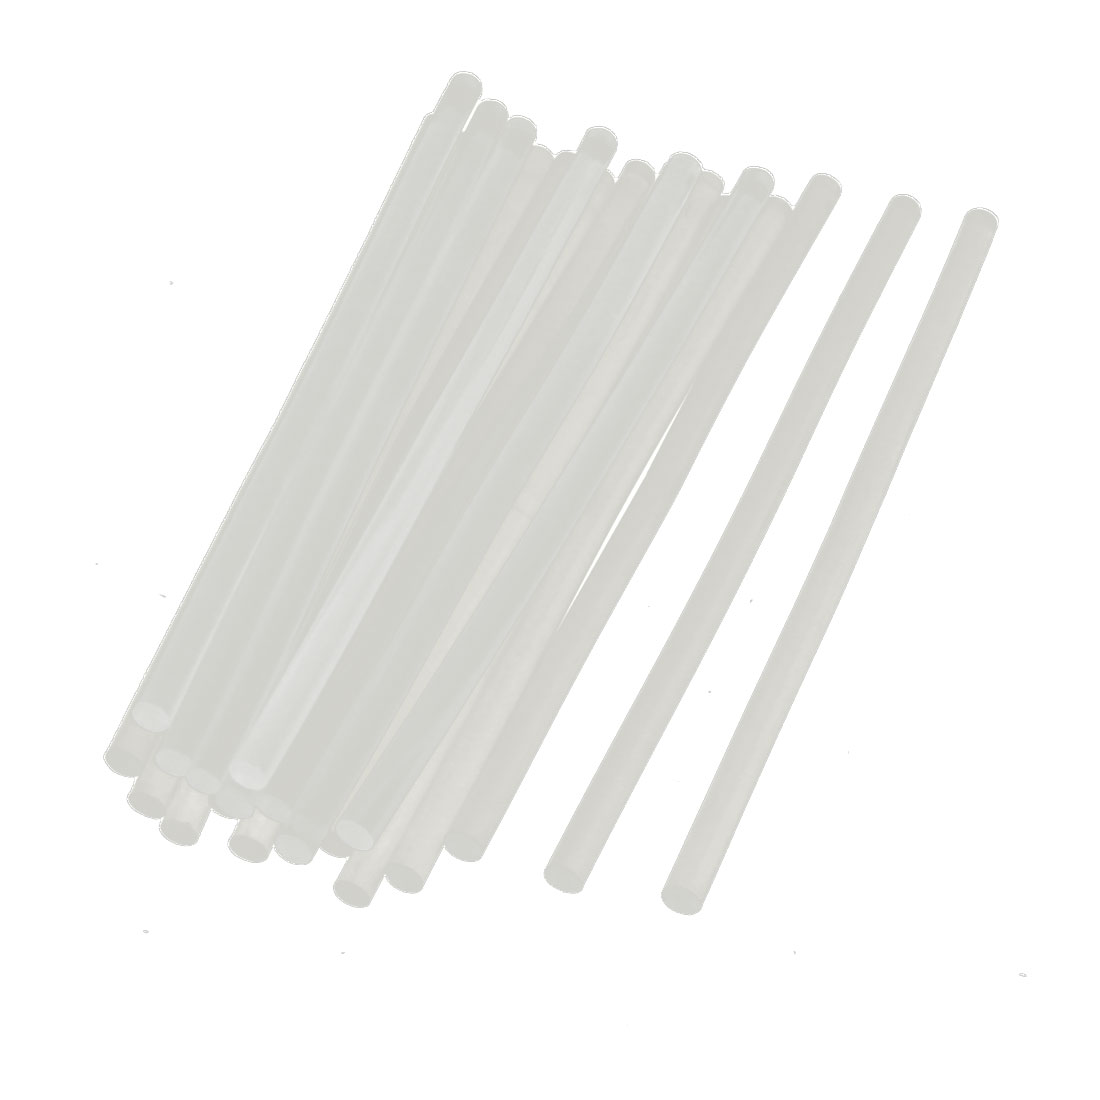 20pcs Clear Adhesive Hot Melt Glue Sticks 7x190mm for Electric Glue Gun